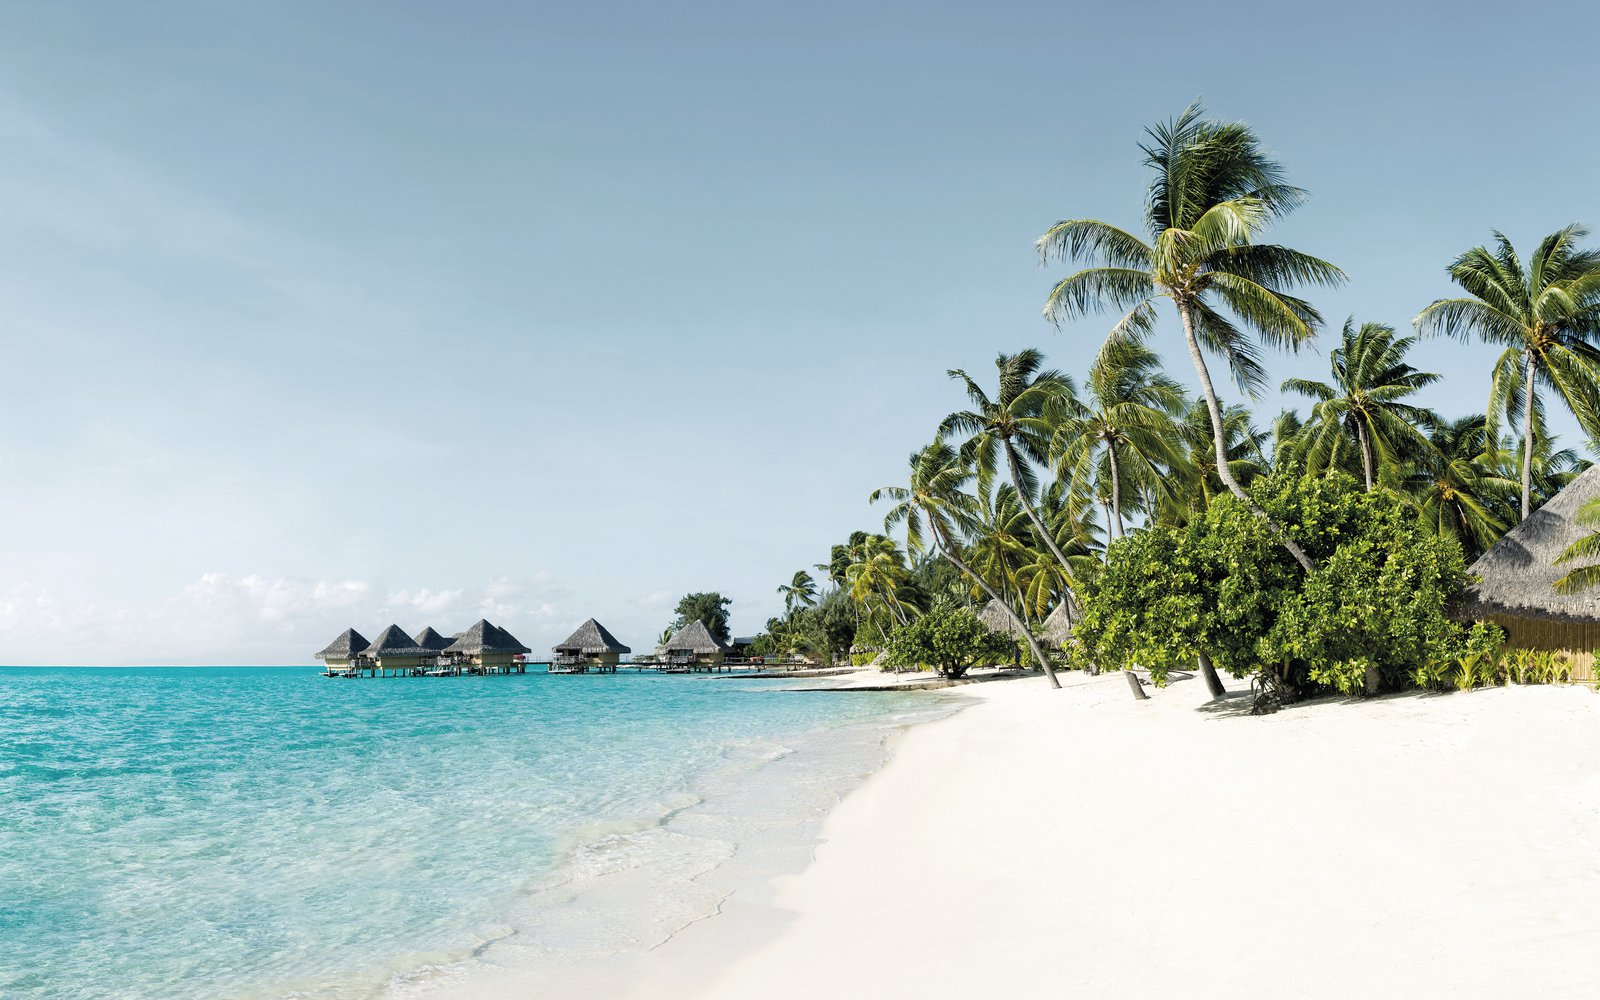 Our Travel Guide for Your Maldives Holiday | Editor: Florian Lieke